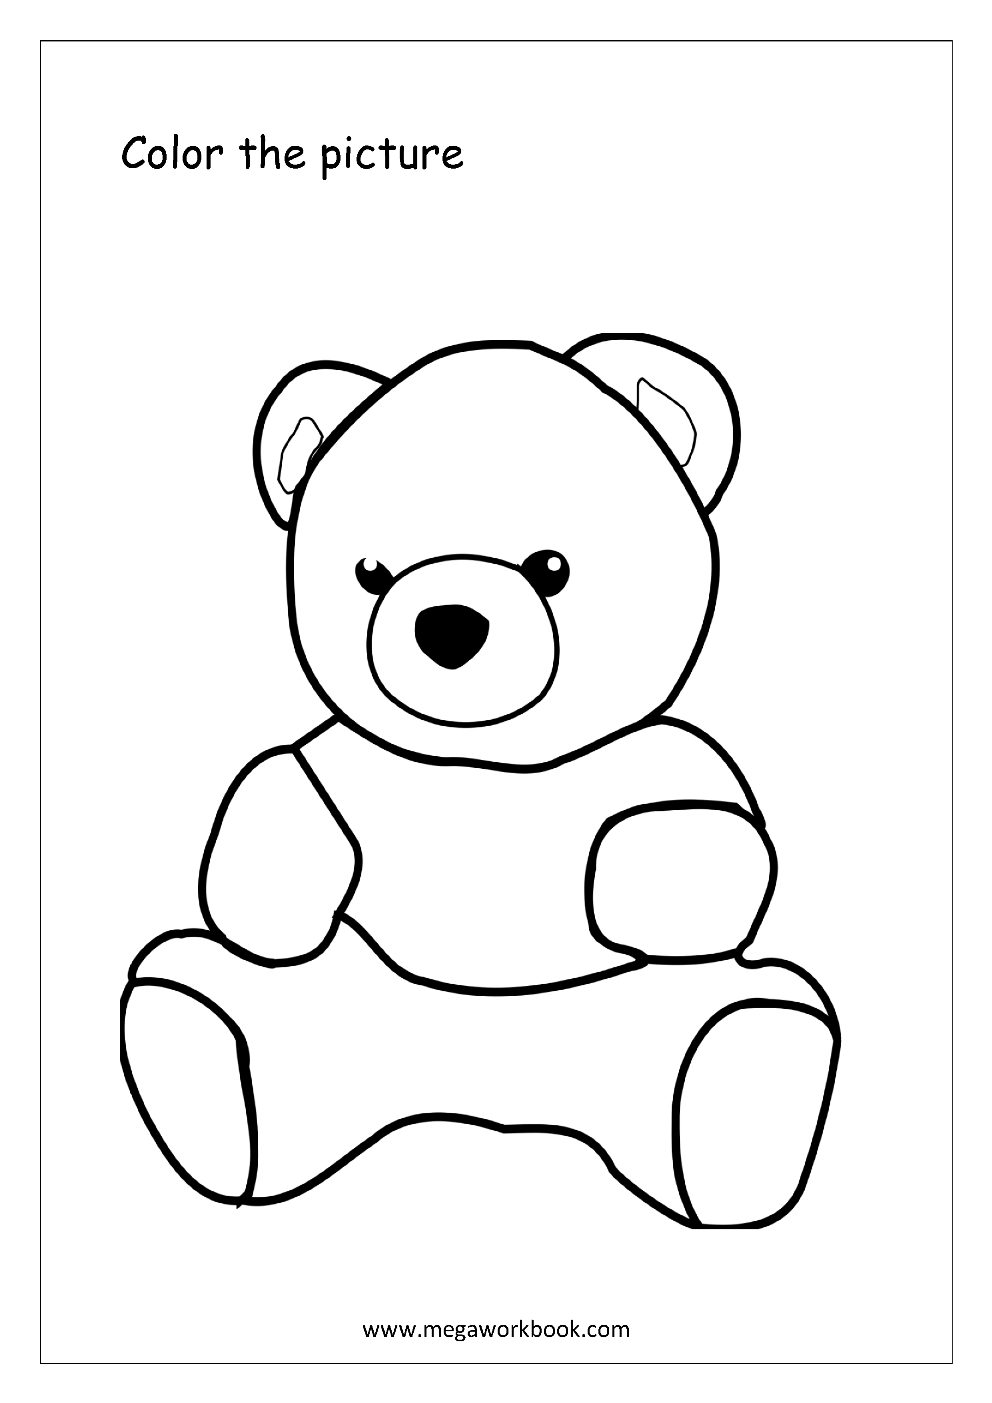 Free Coloring Sheets - Miscellaneous - MegaWorkbook